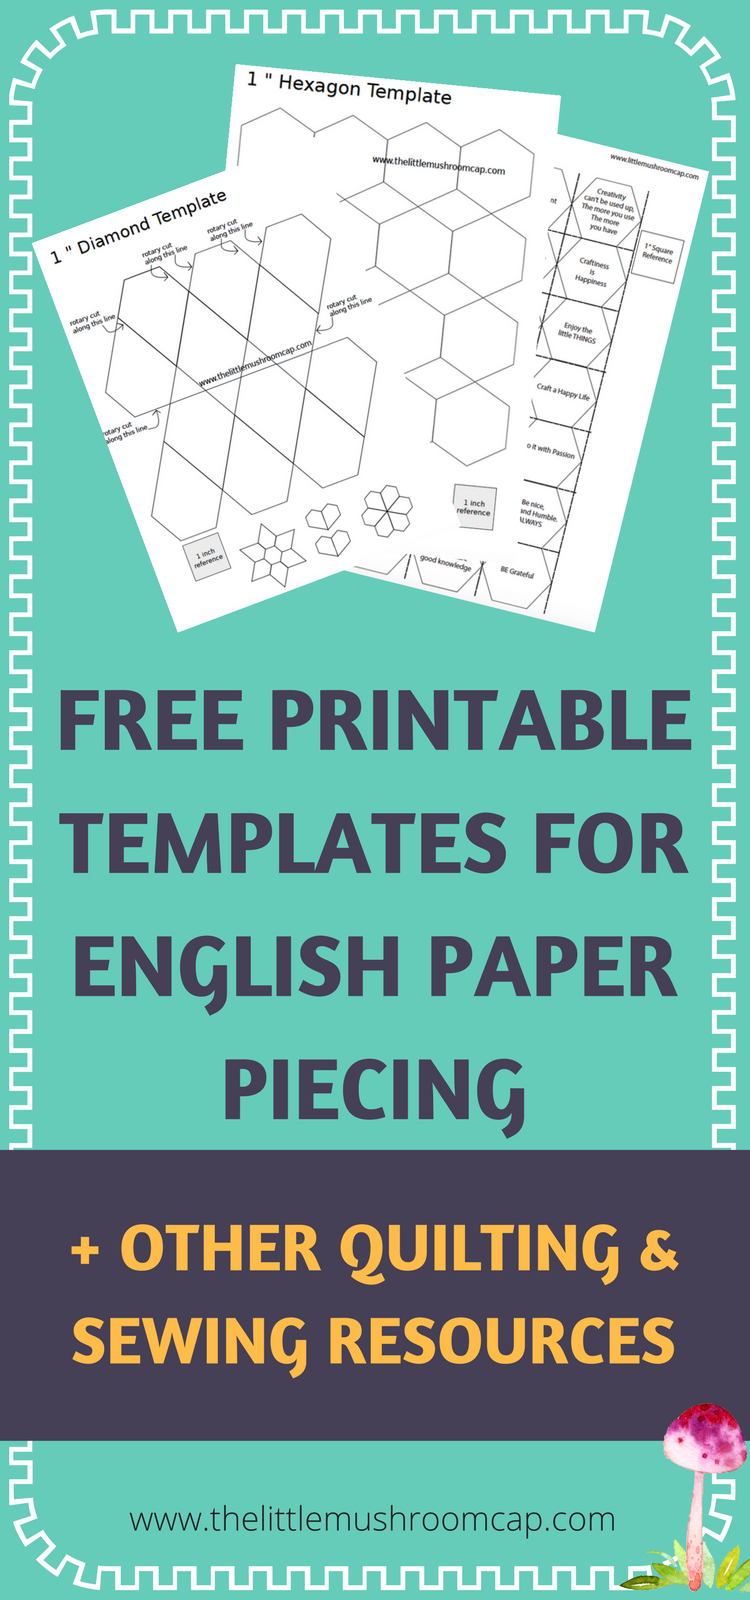 Easy To Use And Free! English Paper Piecing Template, Free - Free Printable Paper Piecing Patterns For Quilting